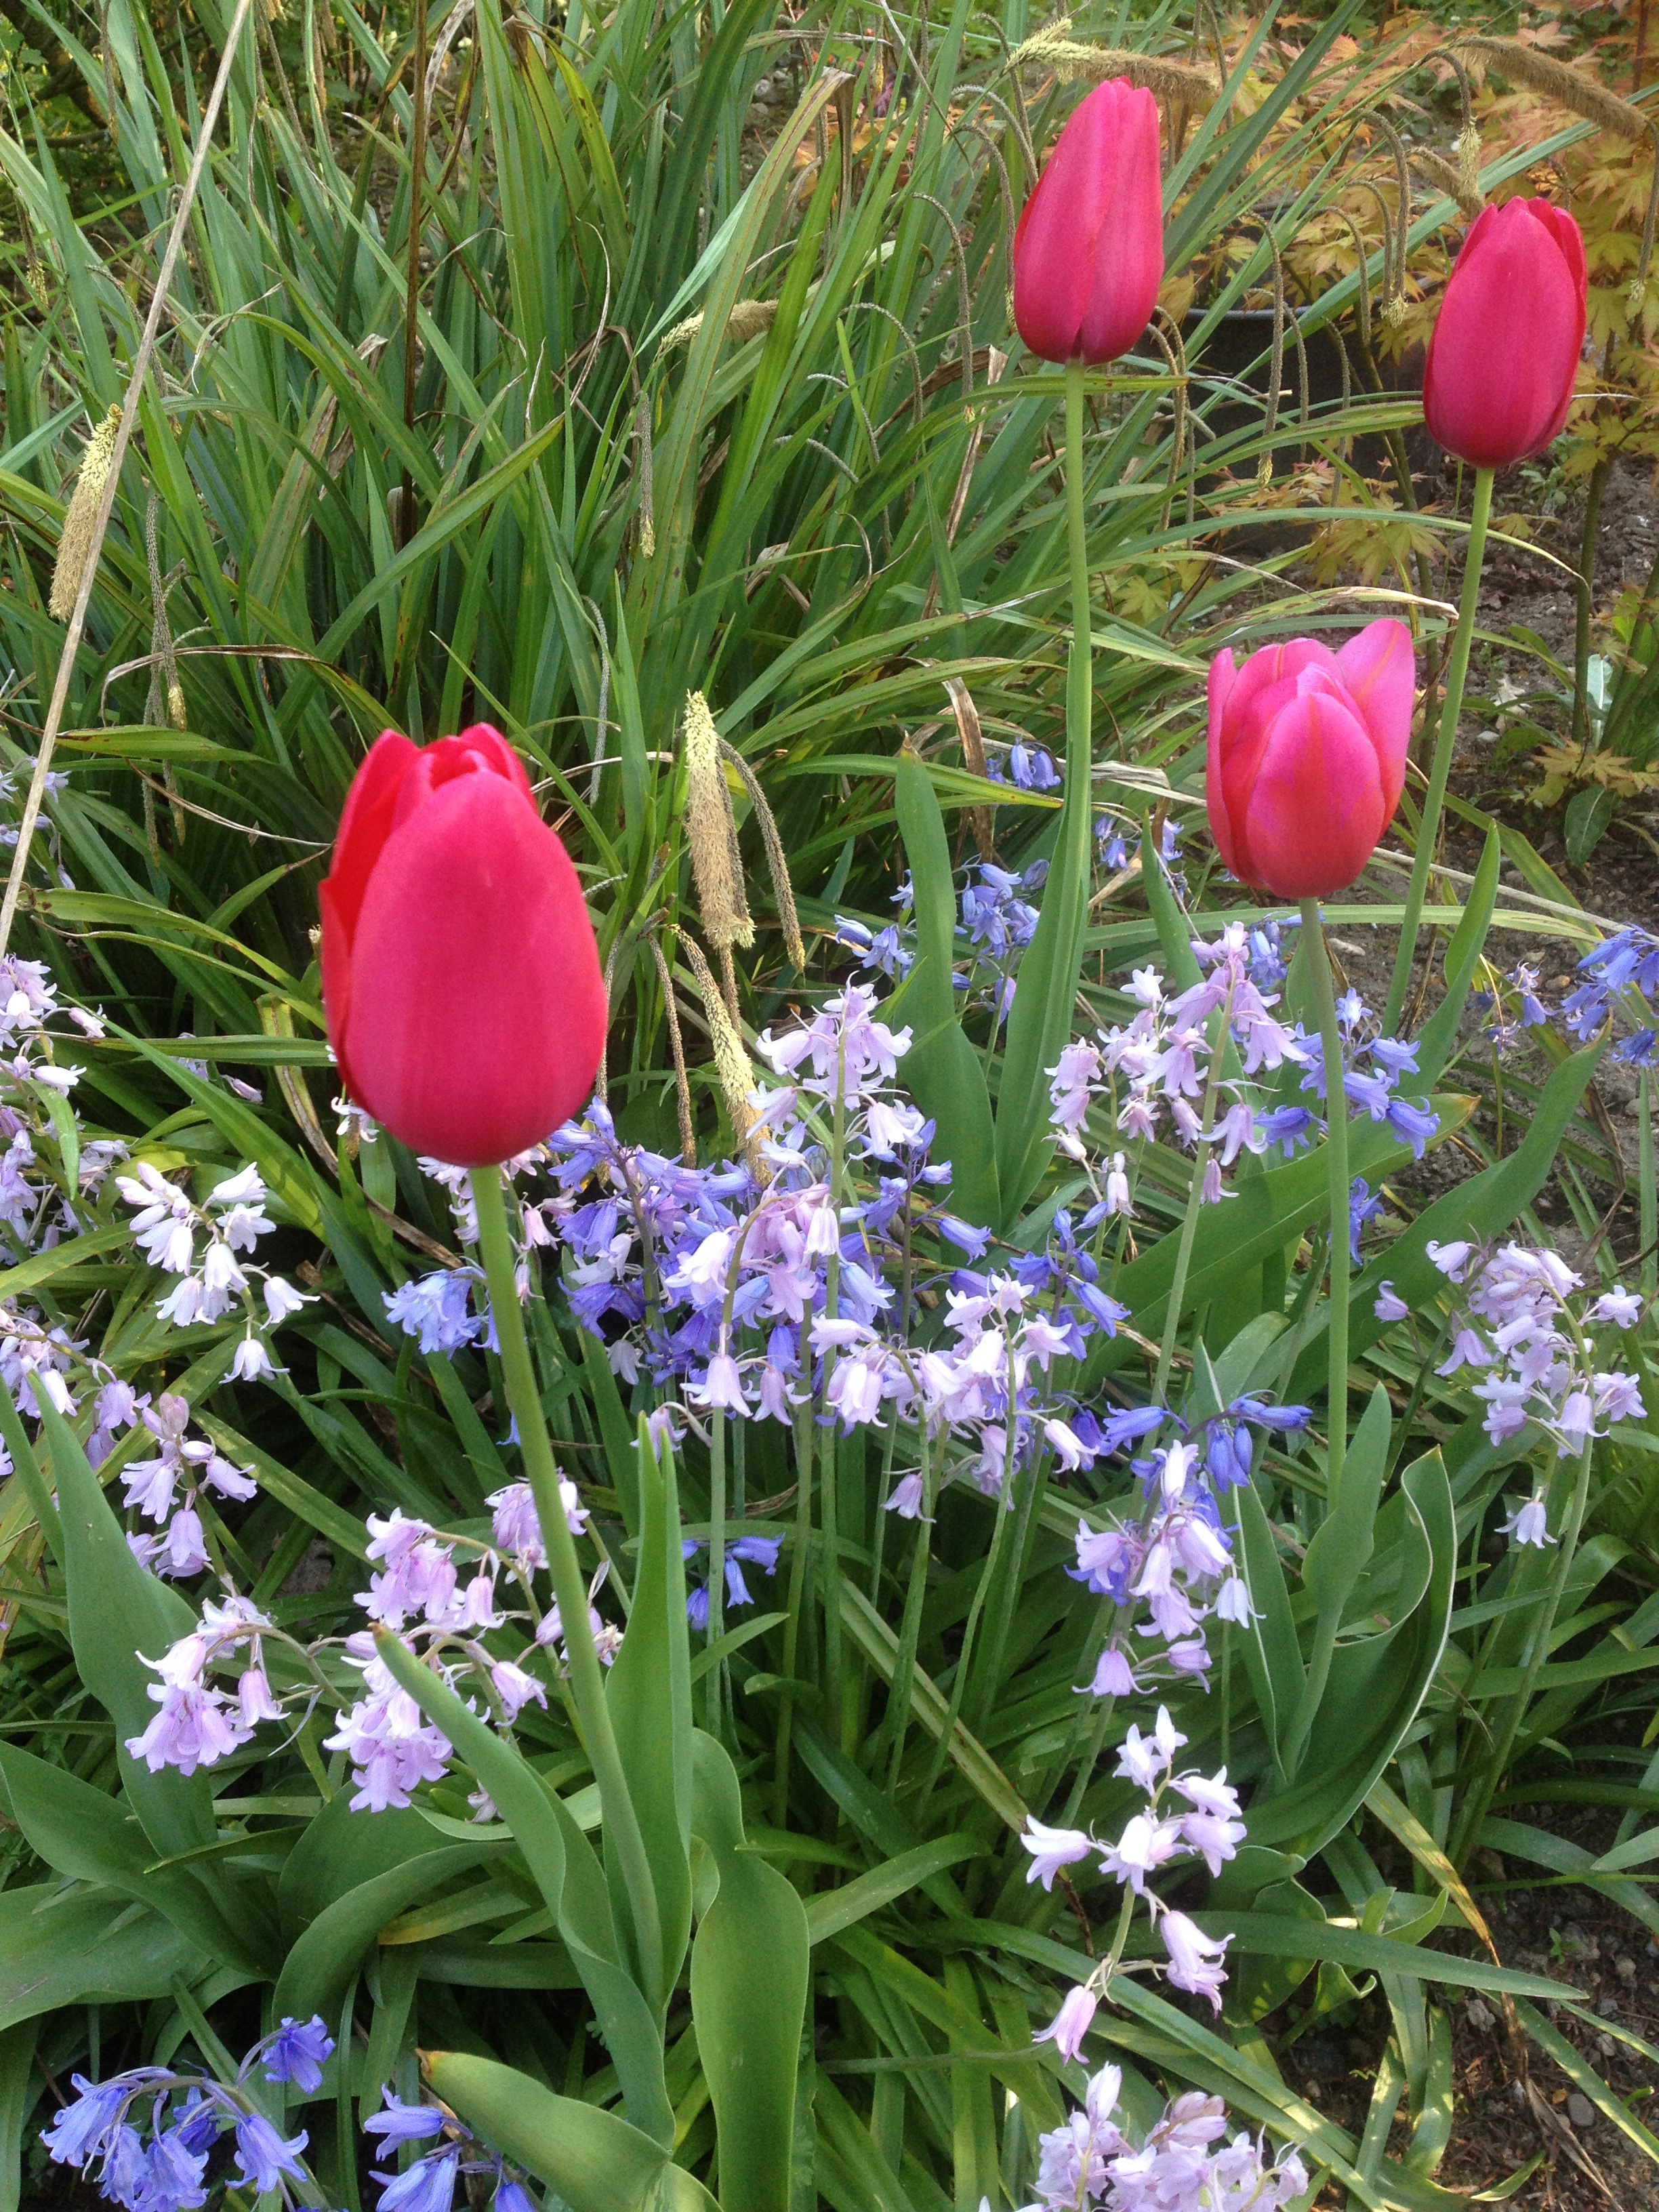 Tulips and Bluebells